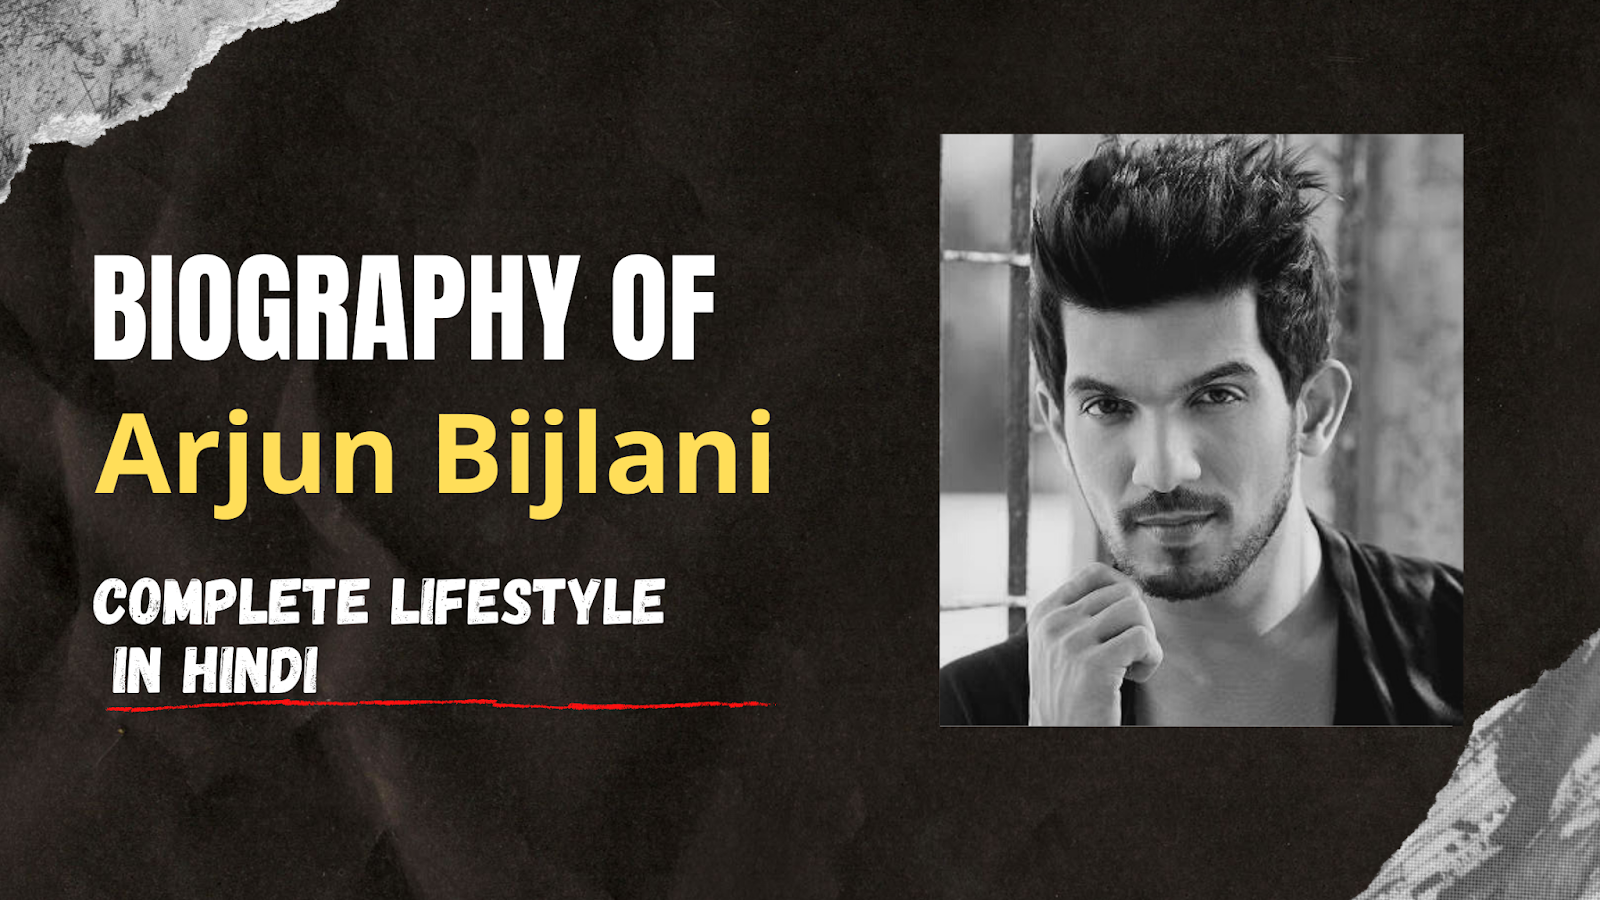 Biography of Arjun Bijlani